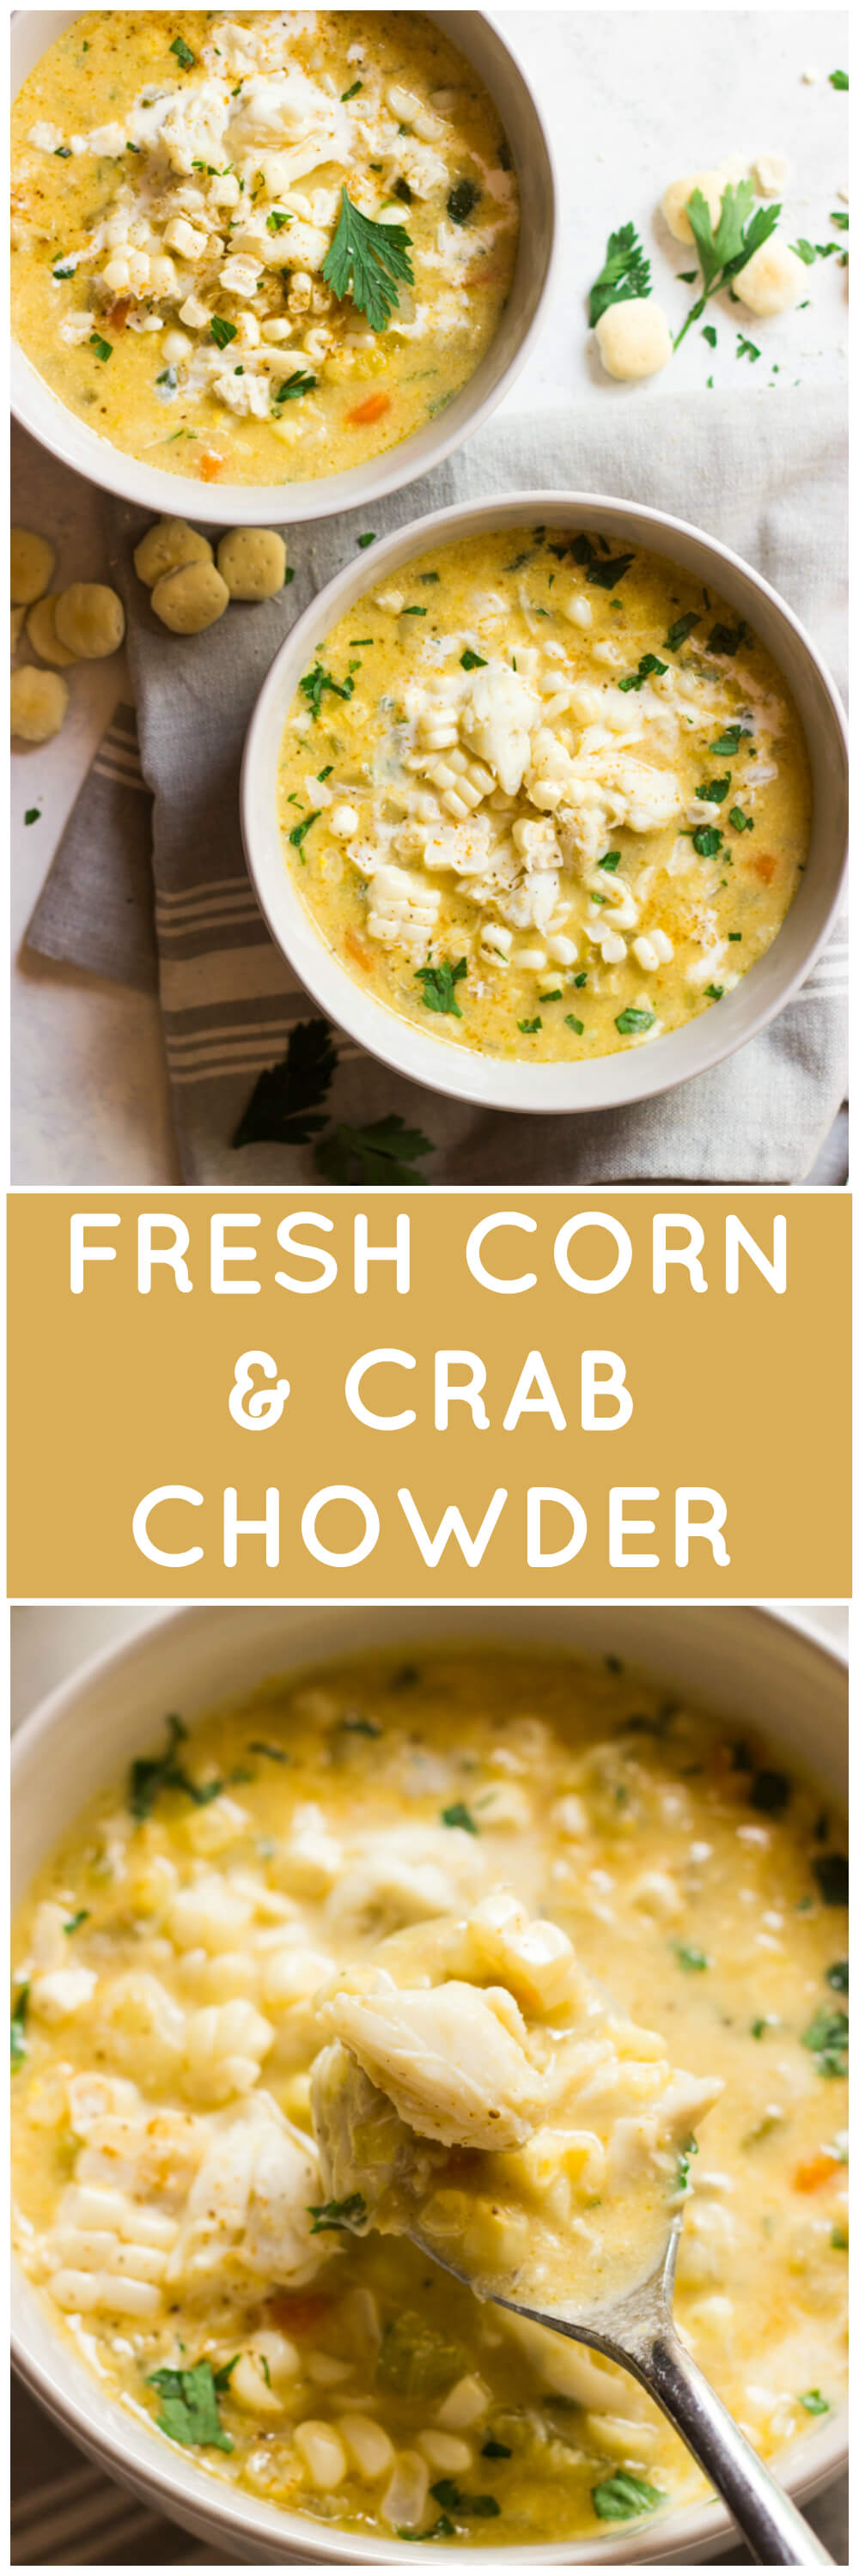 Fresh Corn and Crab Chowder - lightened up chowder with half and half, no flour, fresh sweet corn, and lump crab meat! It's a must have one-pot summer meal | littlebroken.com @littlebroken